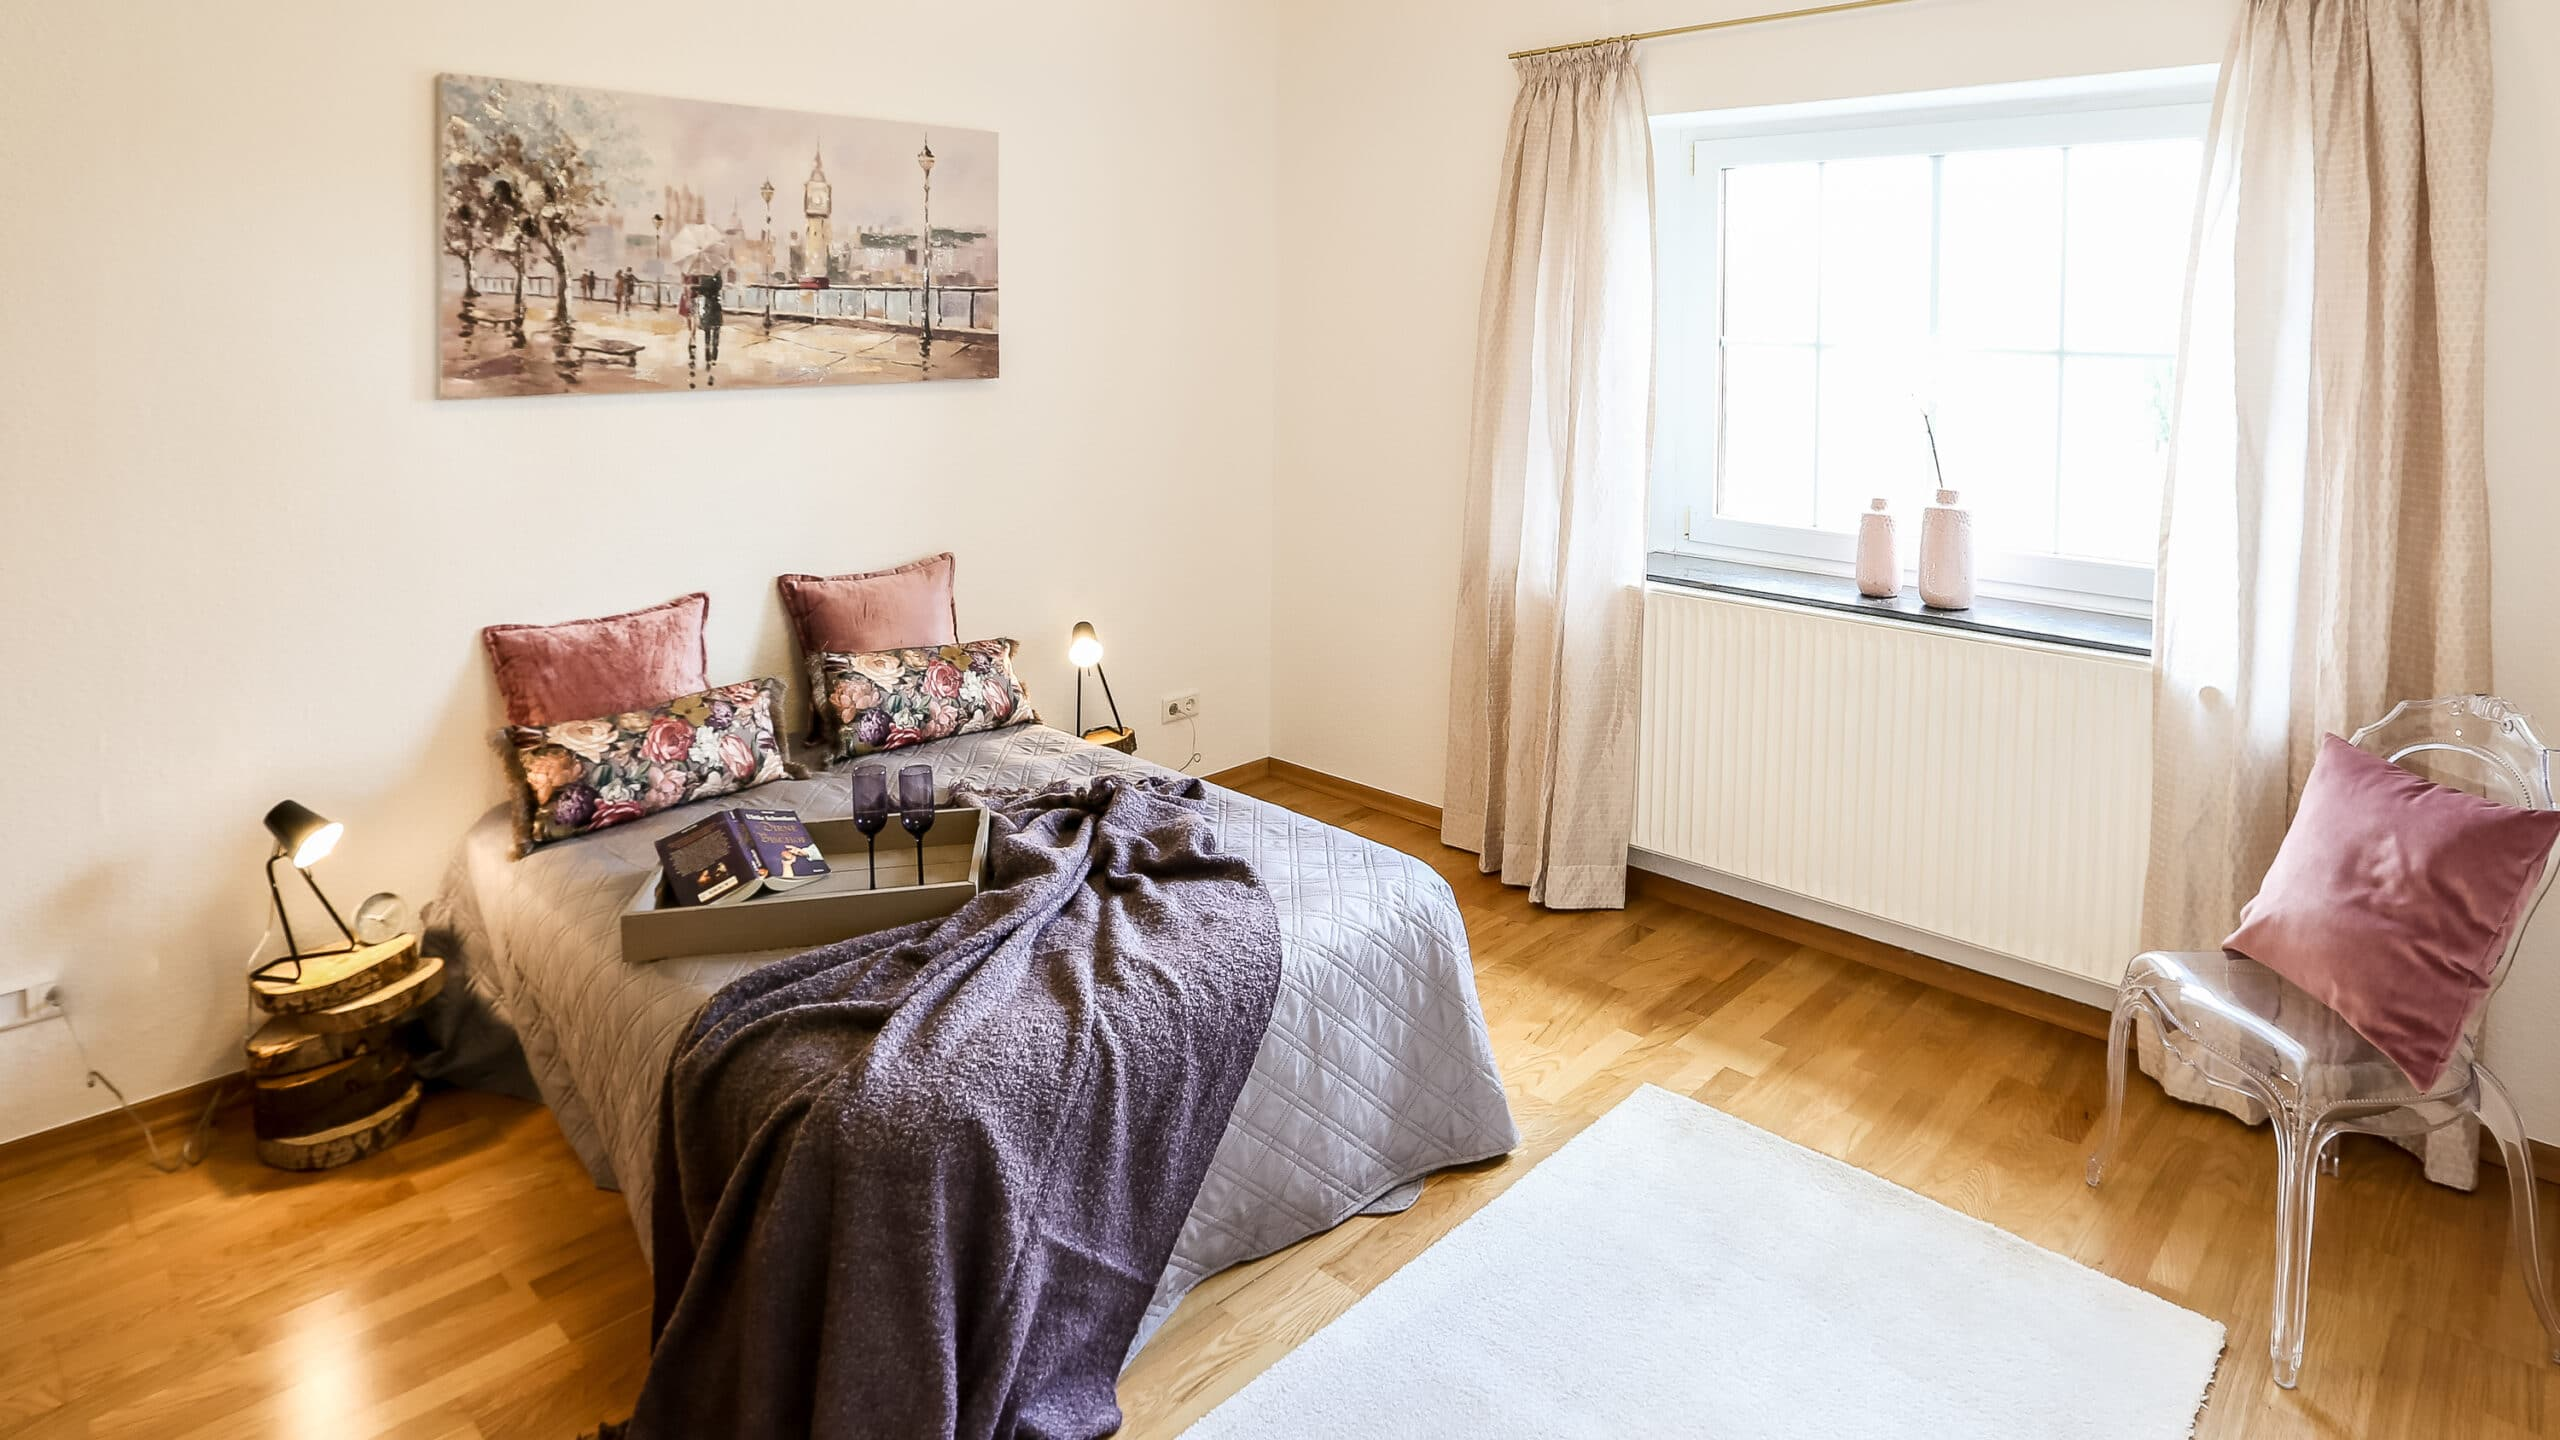 HomeStaging by Ute Niermann / mennemann exklusives wohnen | Billerbeck